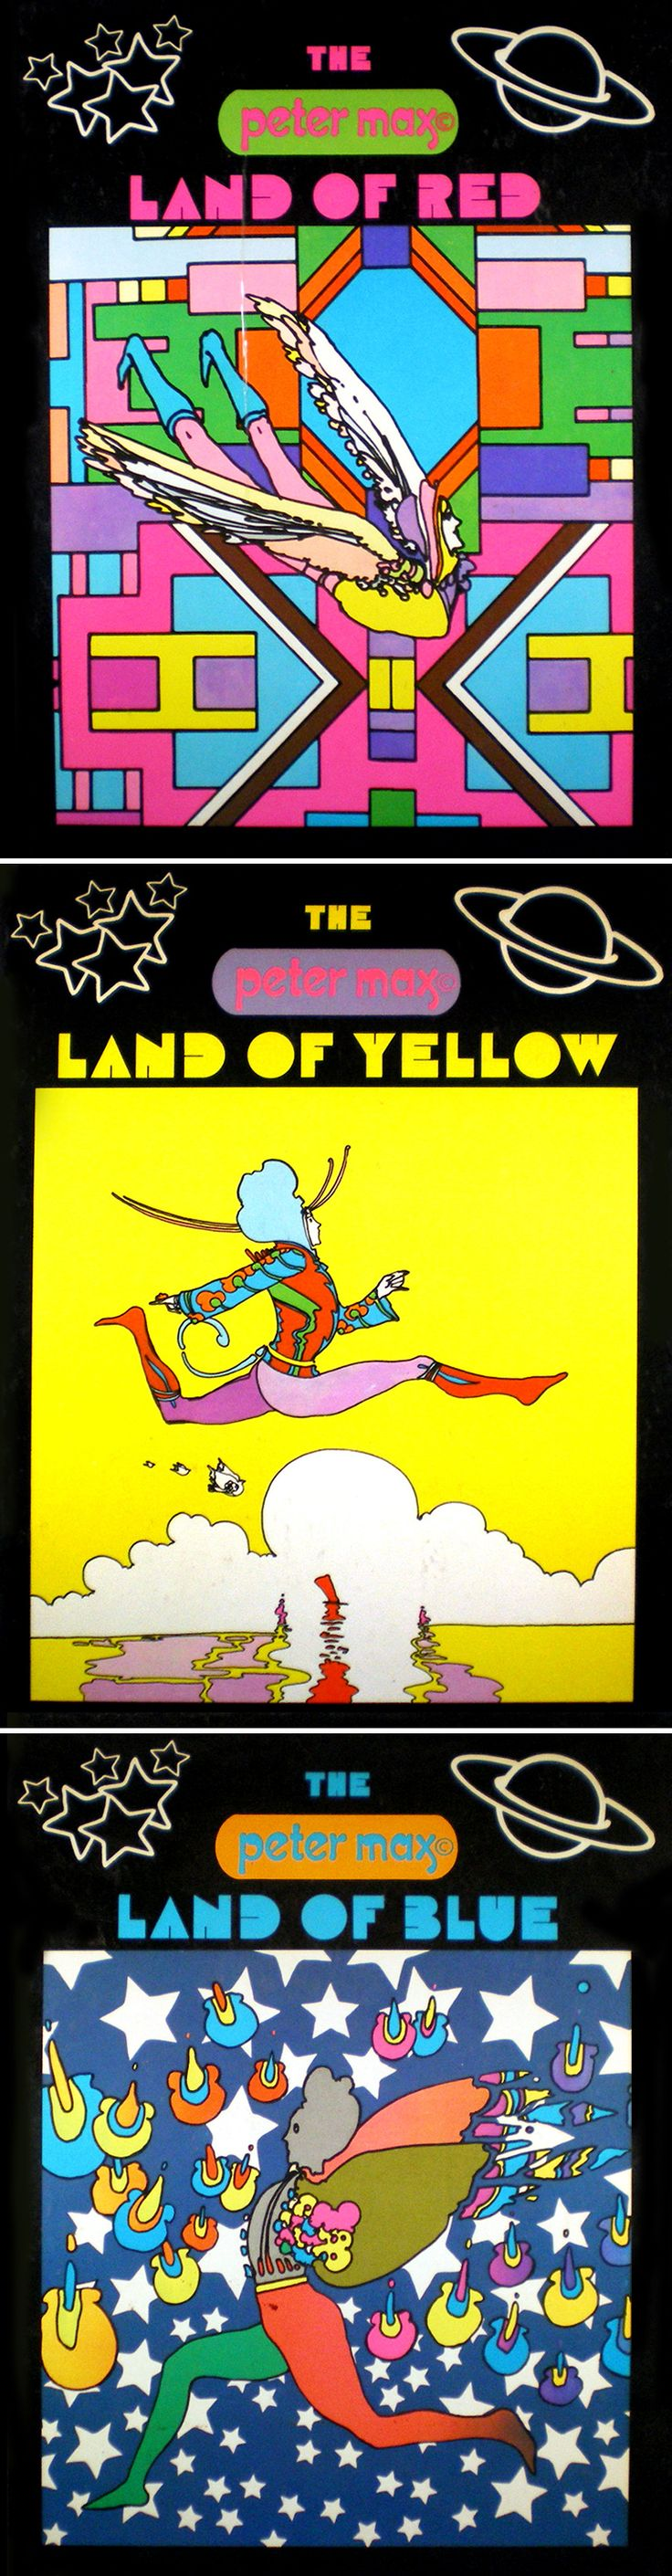 Peter Max — The Land of Red / Yellow / Blue (1970)